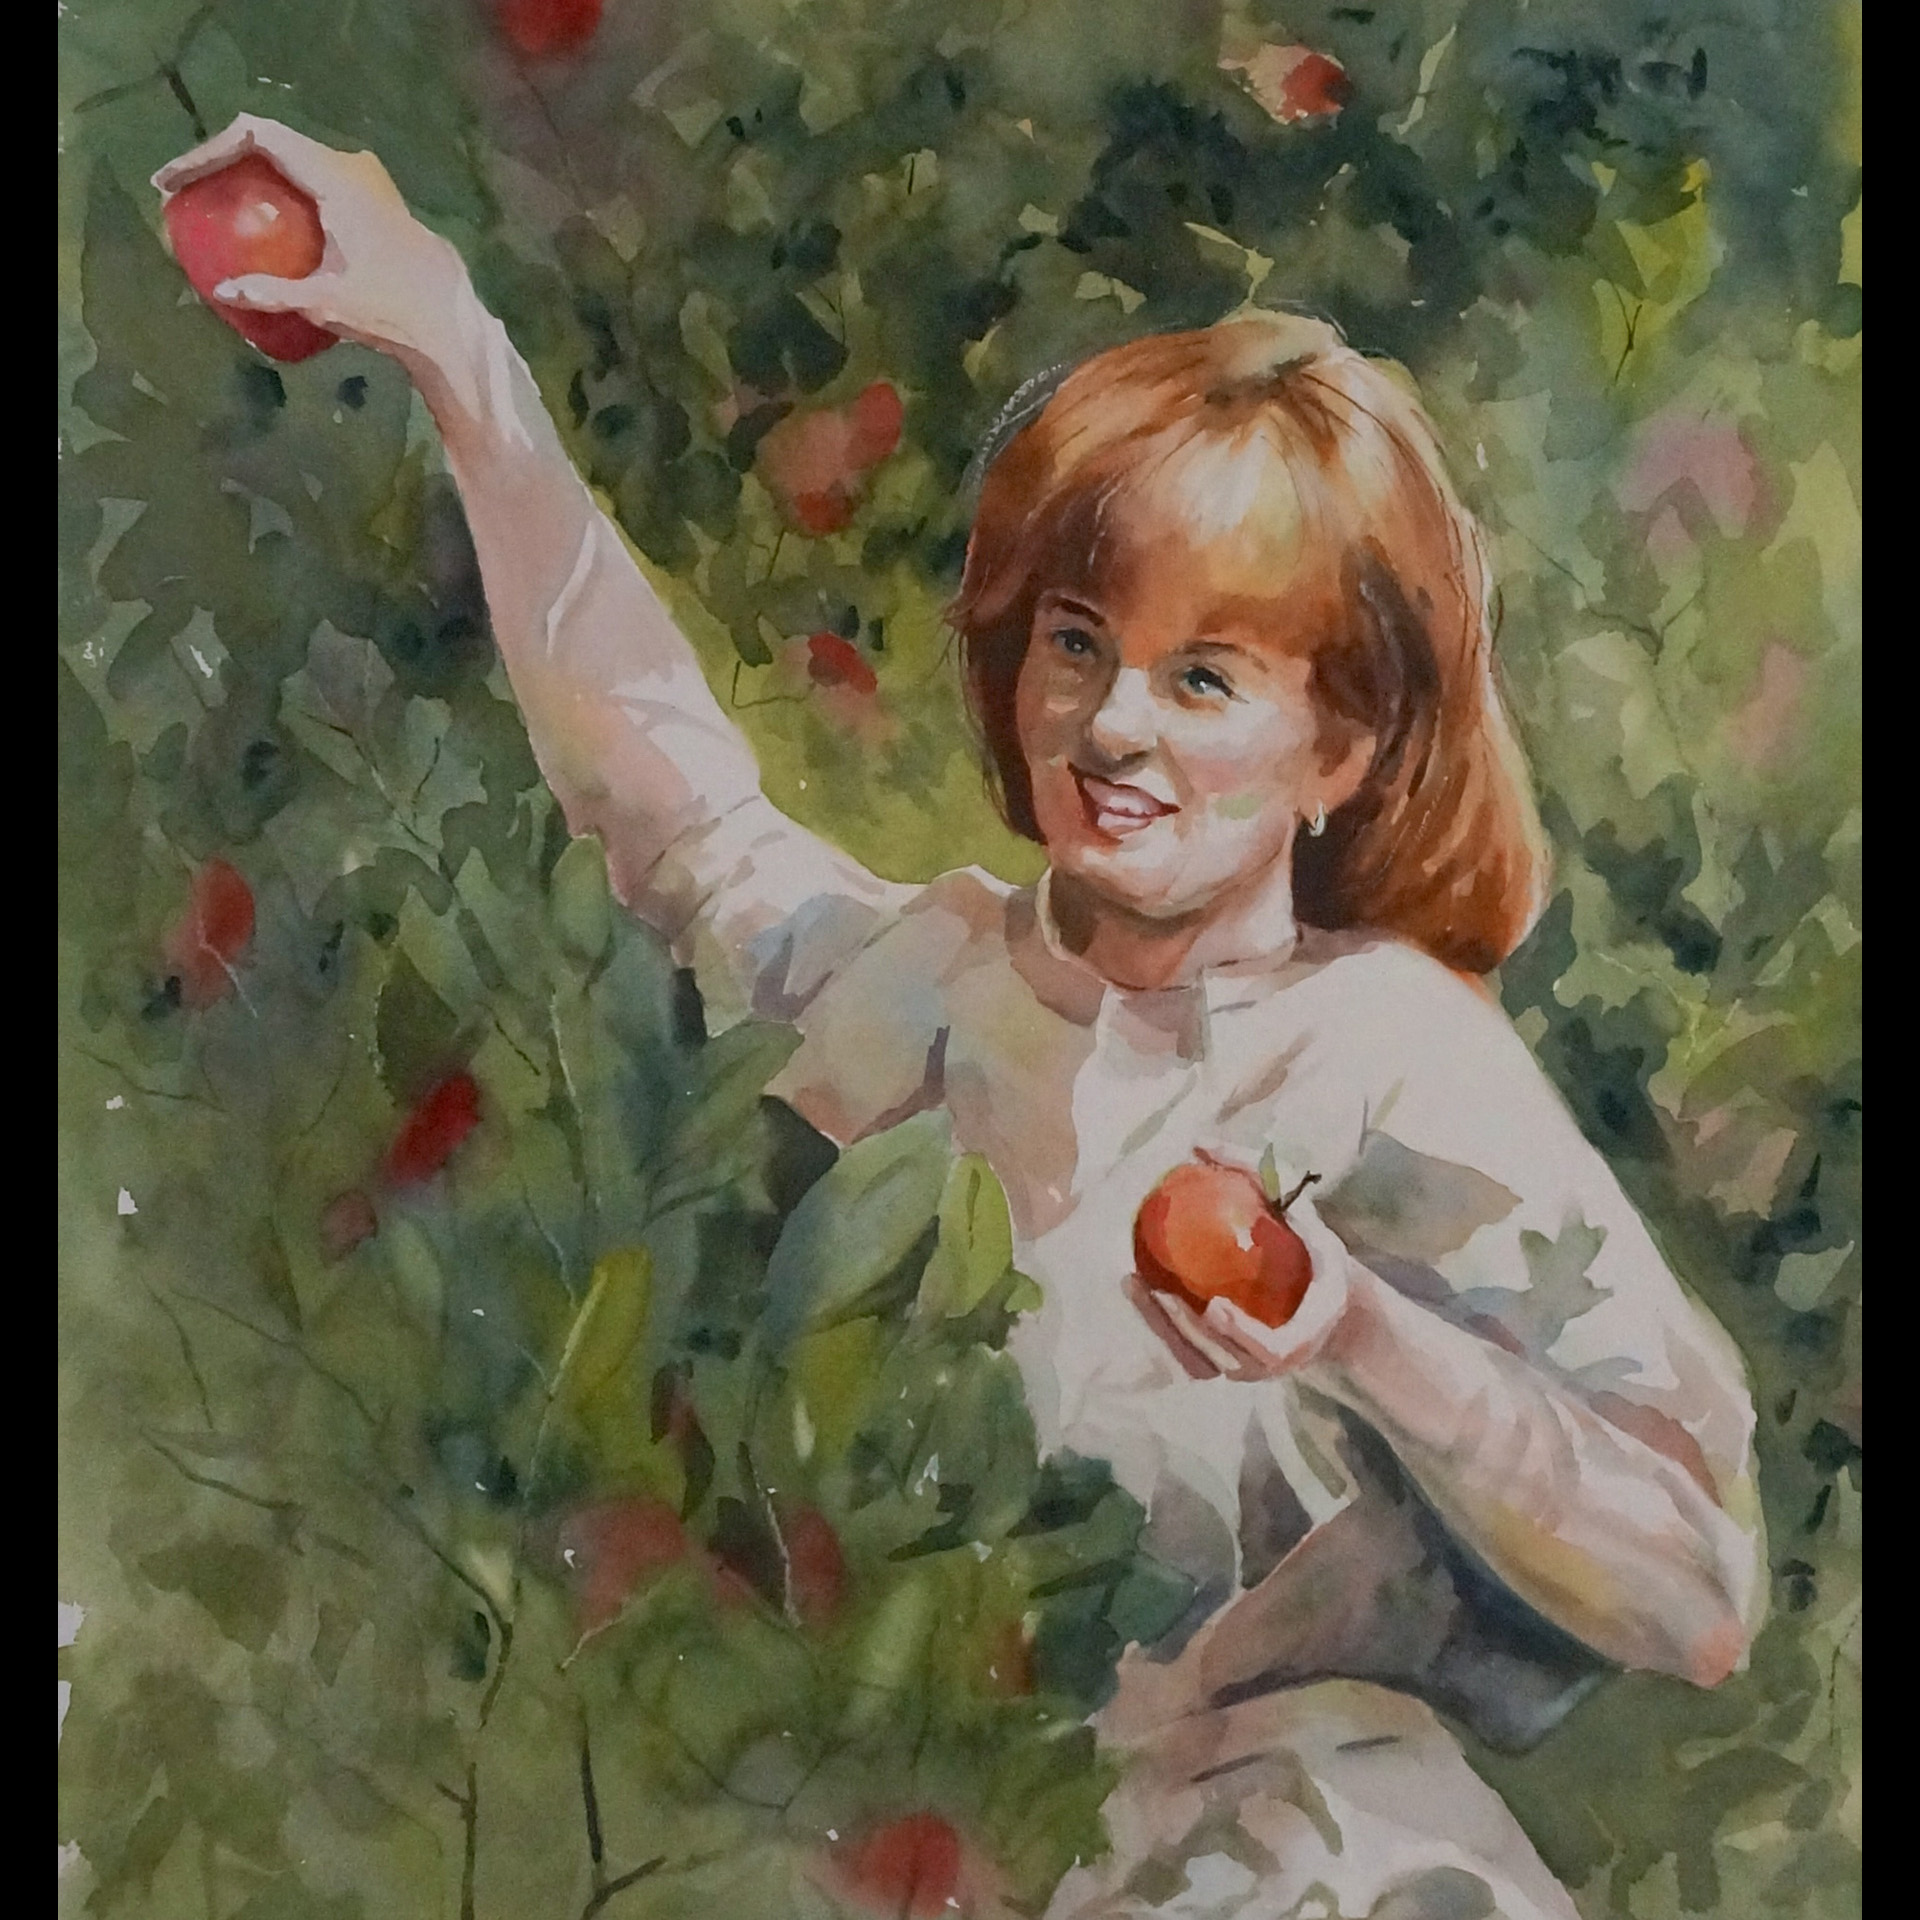 Debra Thomas Weible picking apples in Indiana, way before she became an artist.